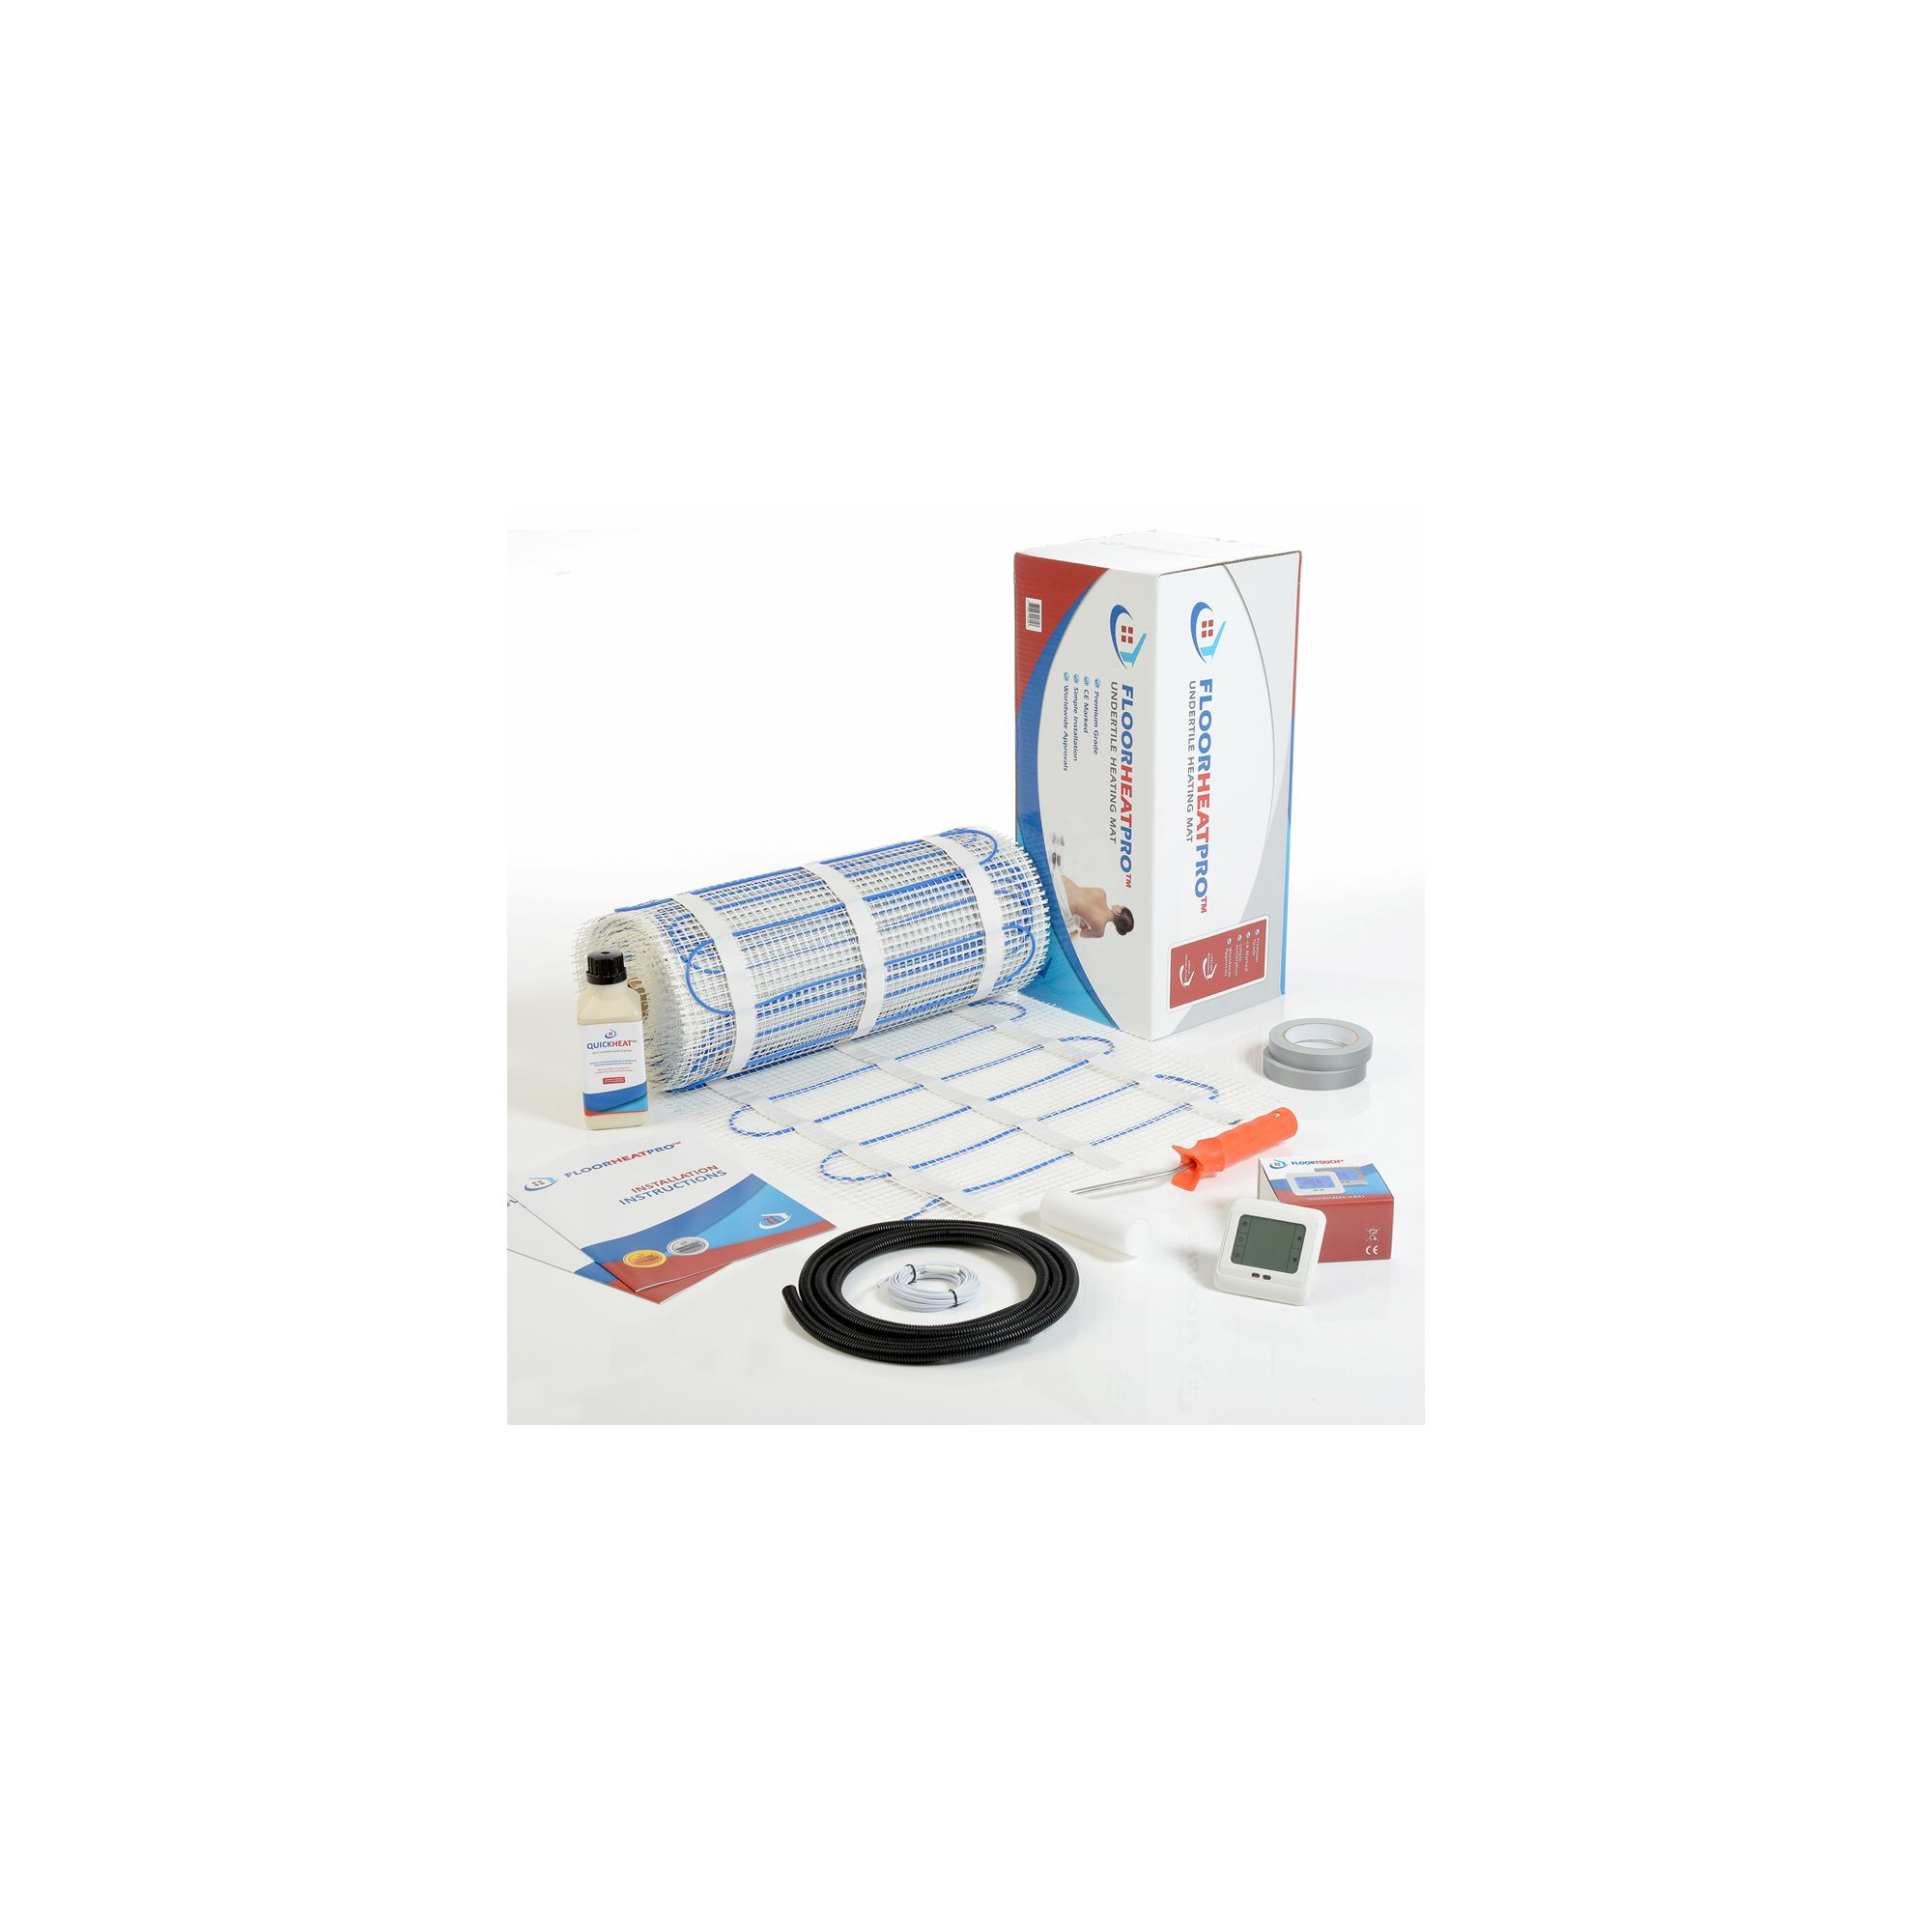 17.0m2 - Underfloor Electric Heating Kit 200w/m2 - Tiles at Tesco Direct